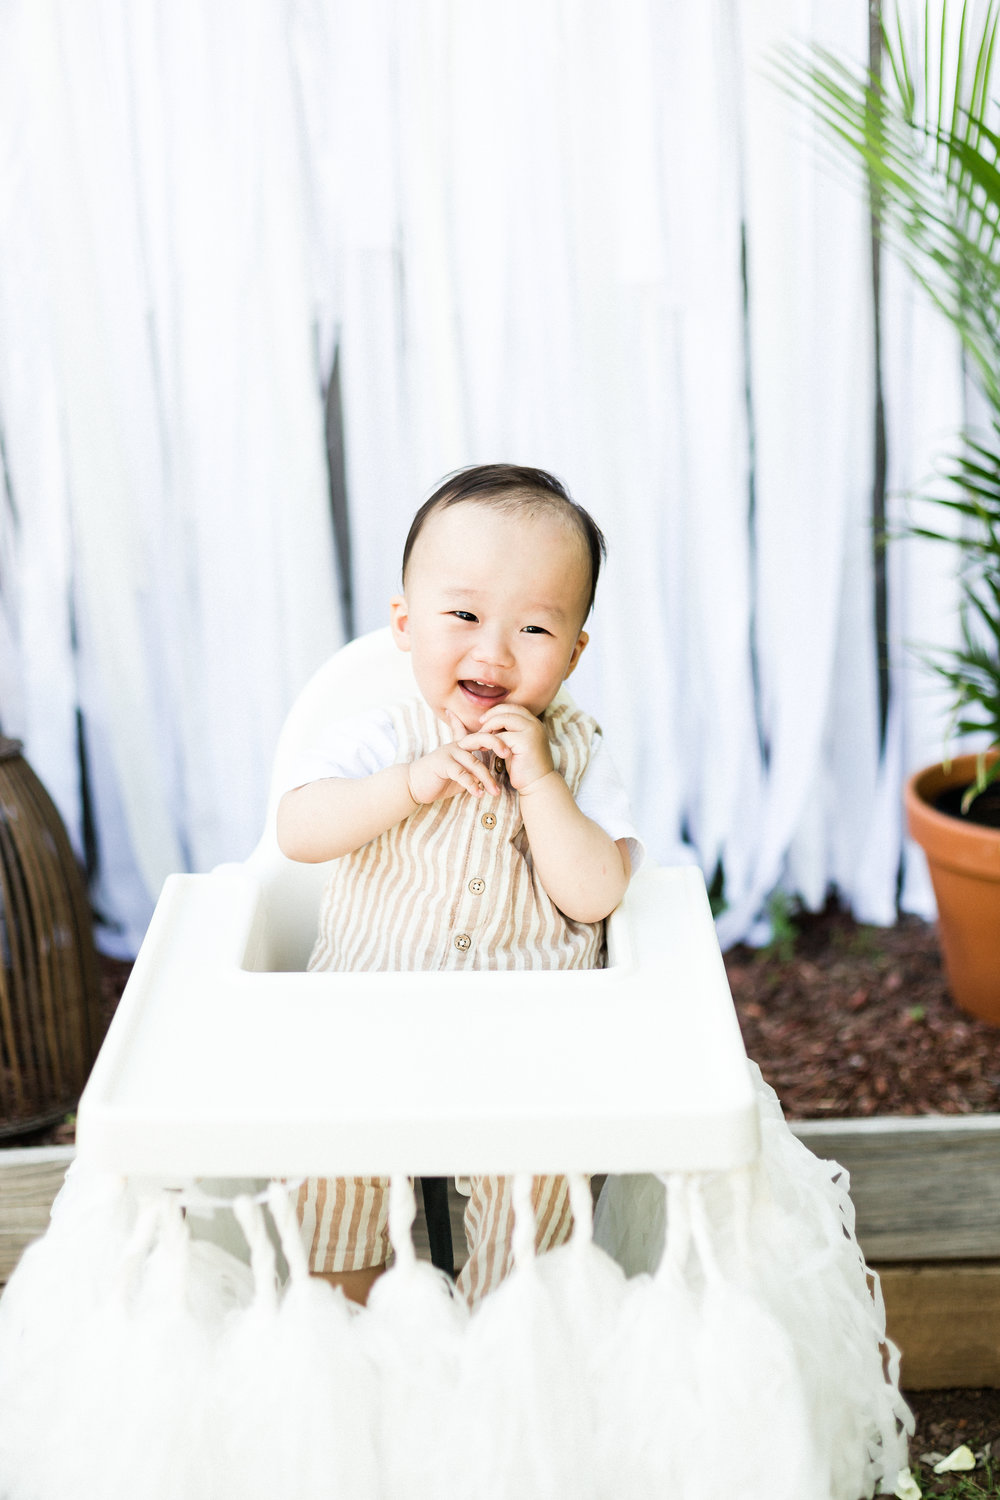 lissie-loomis-photo-nyc-family-photographer-brooklyn-baby30.JPG